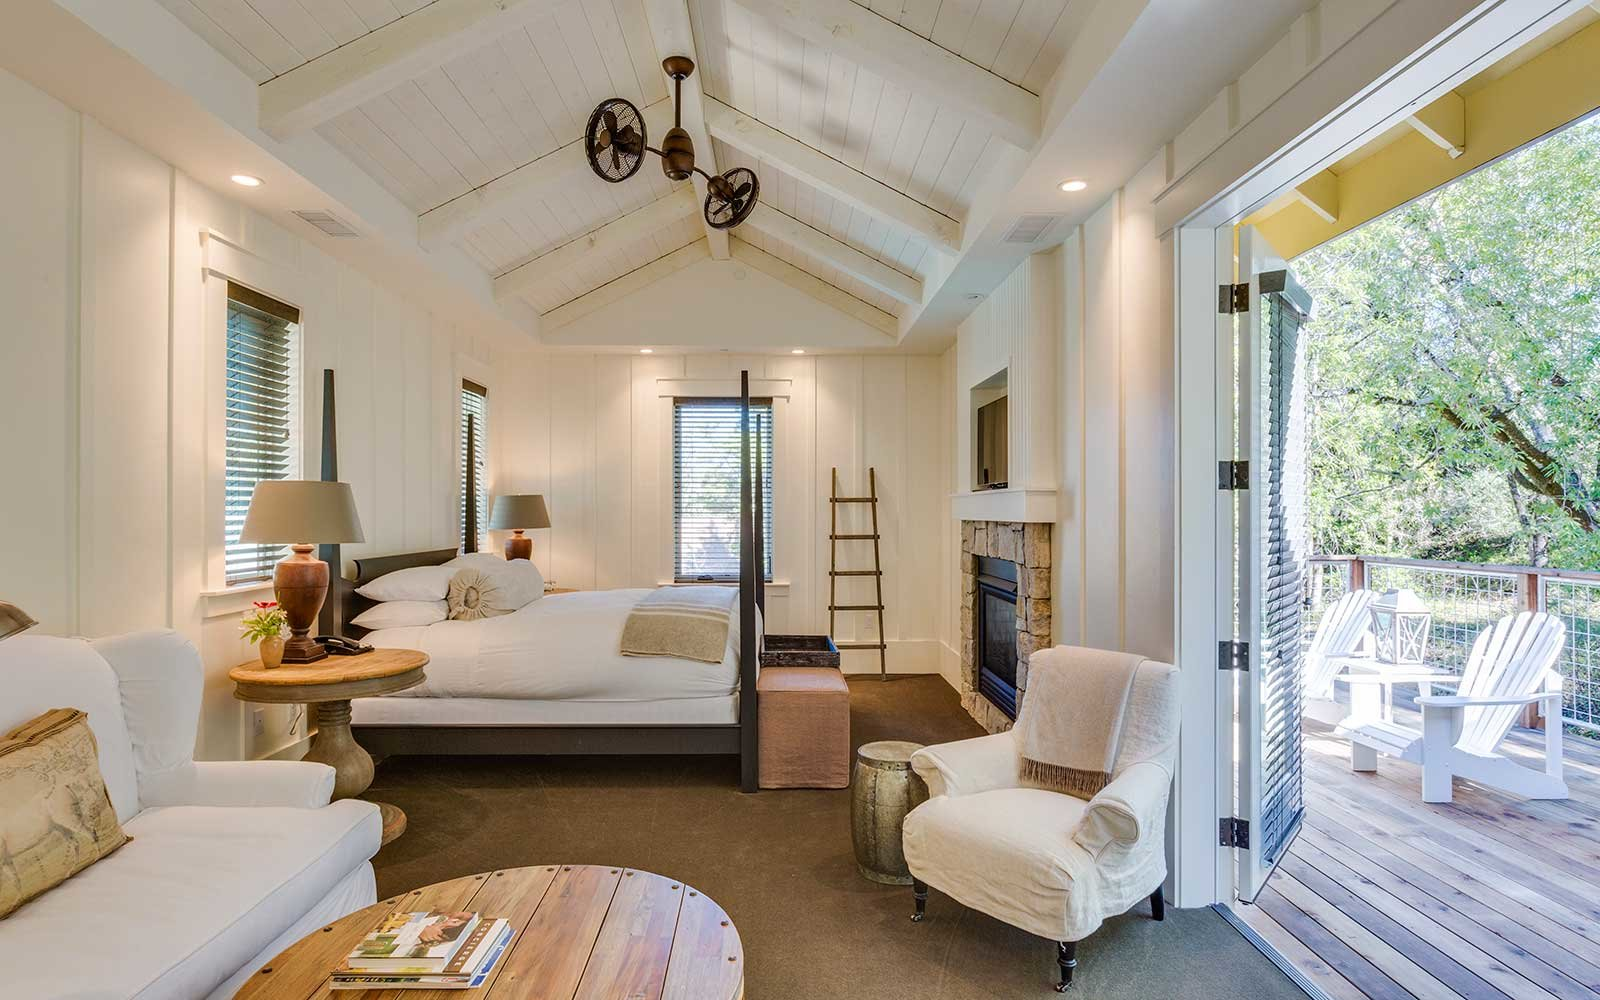 Farmhouse Inn Resort Hotel in California